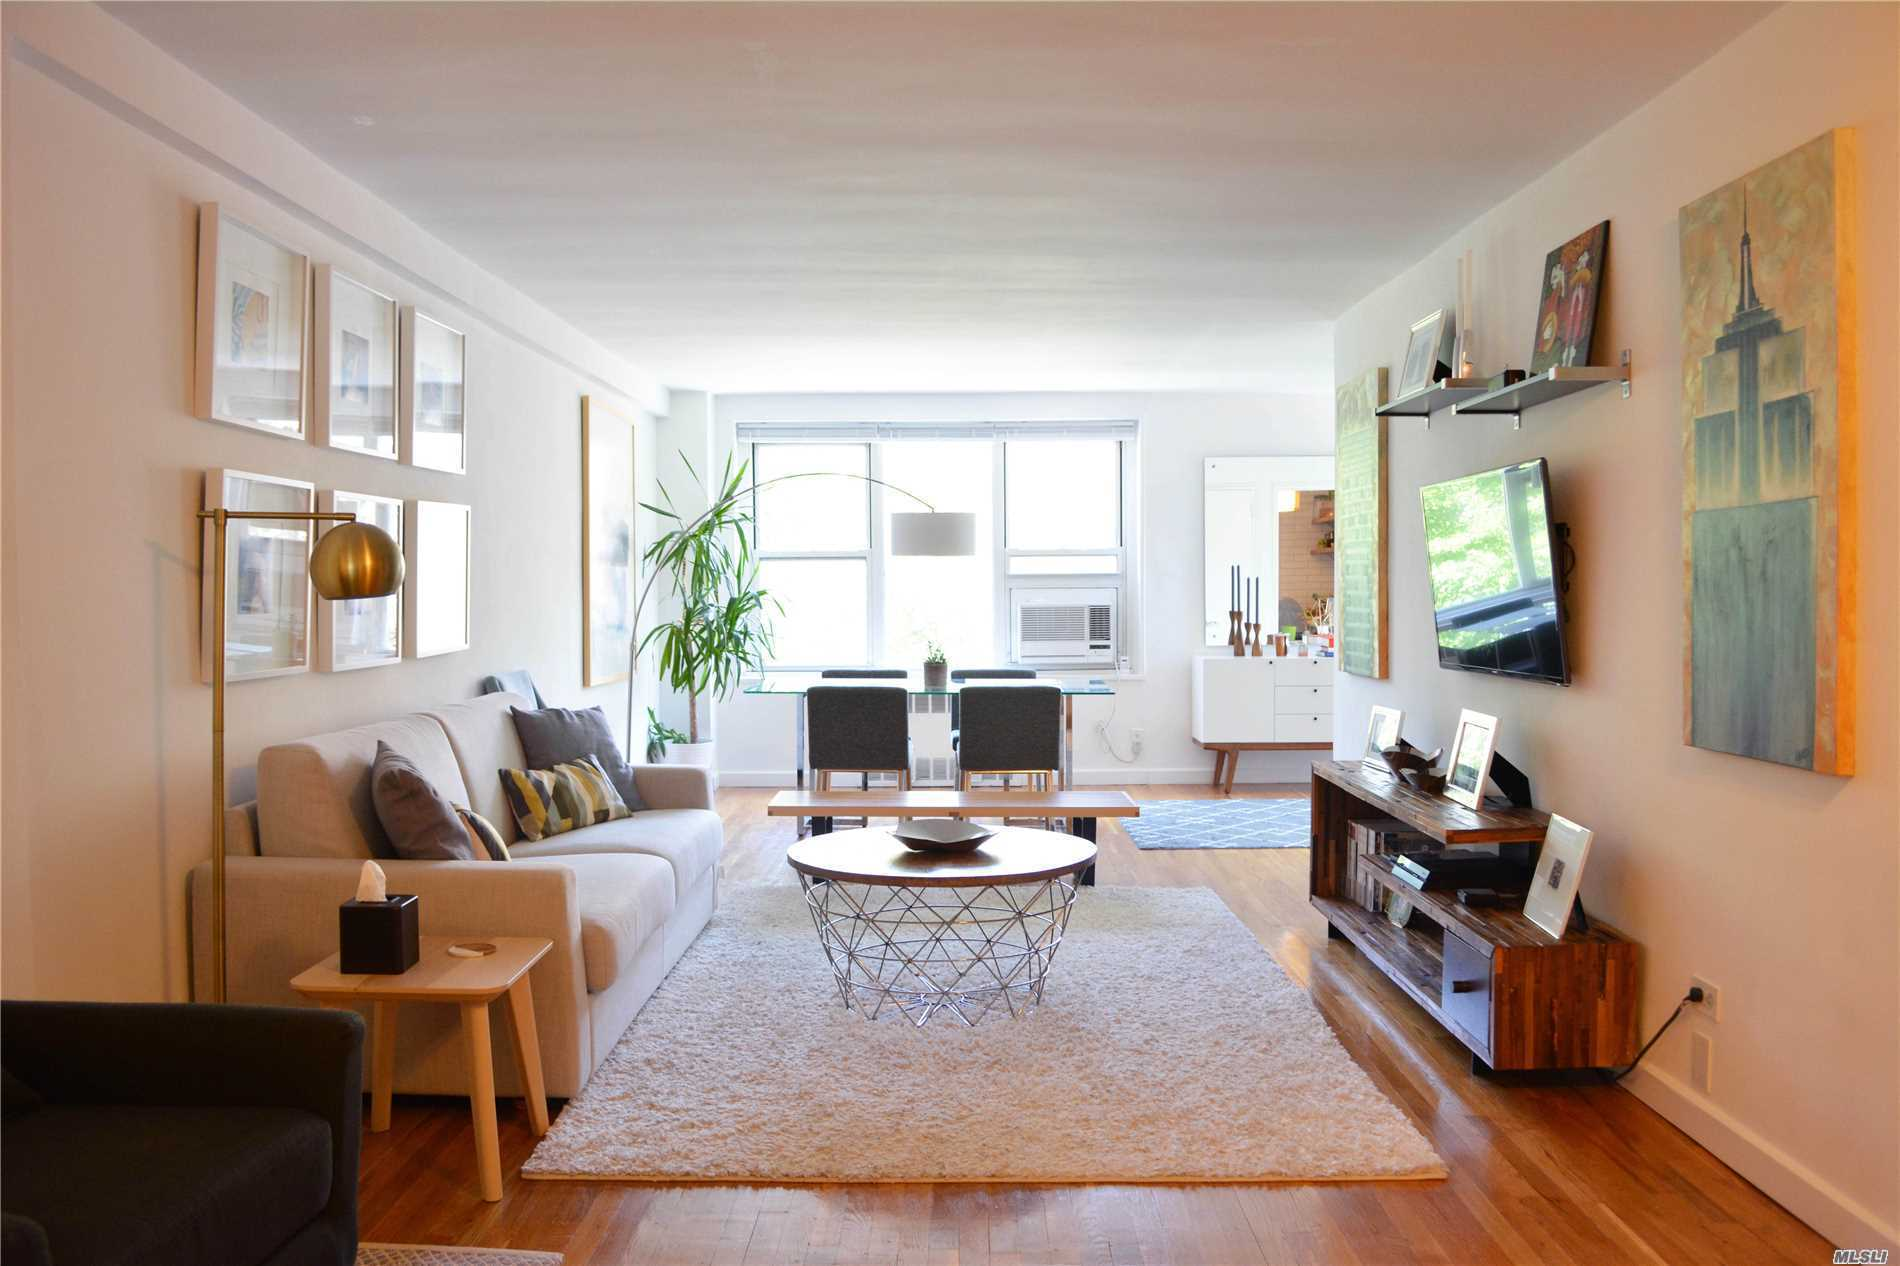 Immaculately Maintained And Renovated 1 Br -Jr.4 In The Heart Of Bayside, Sd # 25. New Ss Appliances, New Counter Tops/Back Splash In Kitchen, Very Modern Feel, Six Closets, Hw Floors Throughout, Artfully Designed With Mango Wood Shelves, Many Windows Create A Light Filled Home, Close To All Shopping And Transportation To Nyc. Salary 80K, Flip Tax $45.00 Per Share, 237 Shares=$10, 665 Paid By Seller, Outdoor Parking $60 Per Month, W/D Lobby Level, Truly Turn Key! A Real Gem!